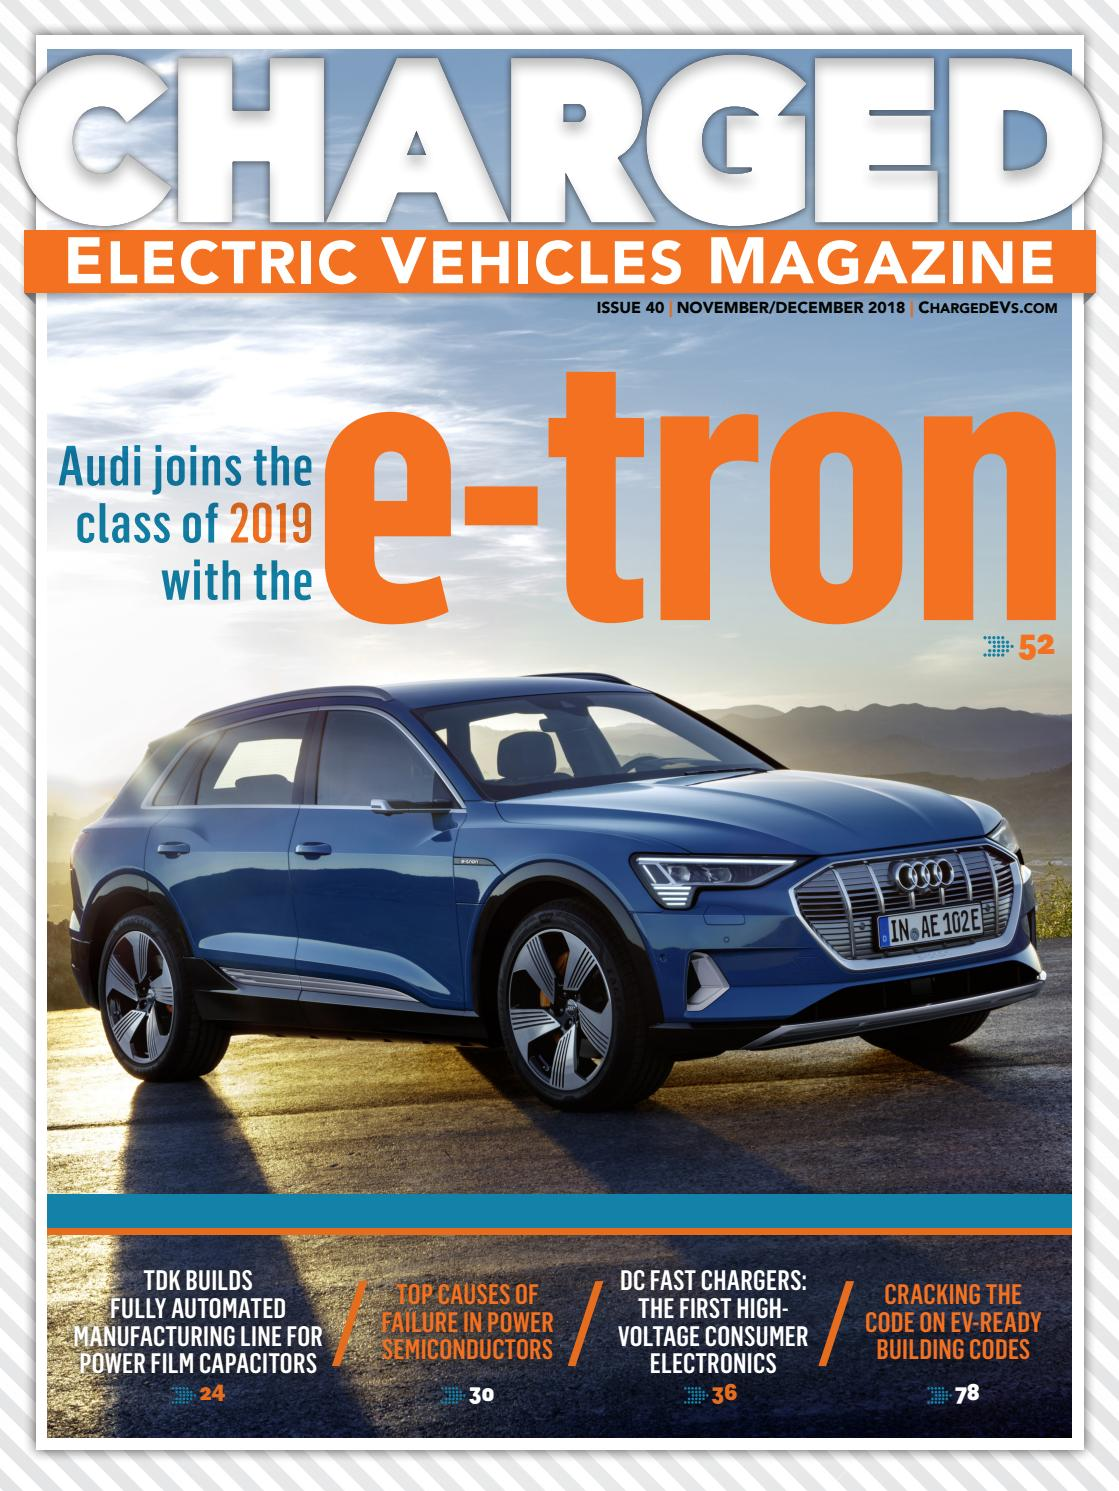 CHARGED Electric Vehicles Magazine - Issue 40 NOV/DEC 2018